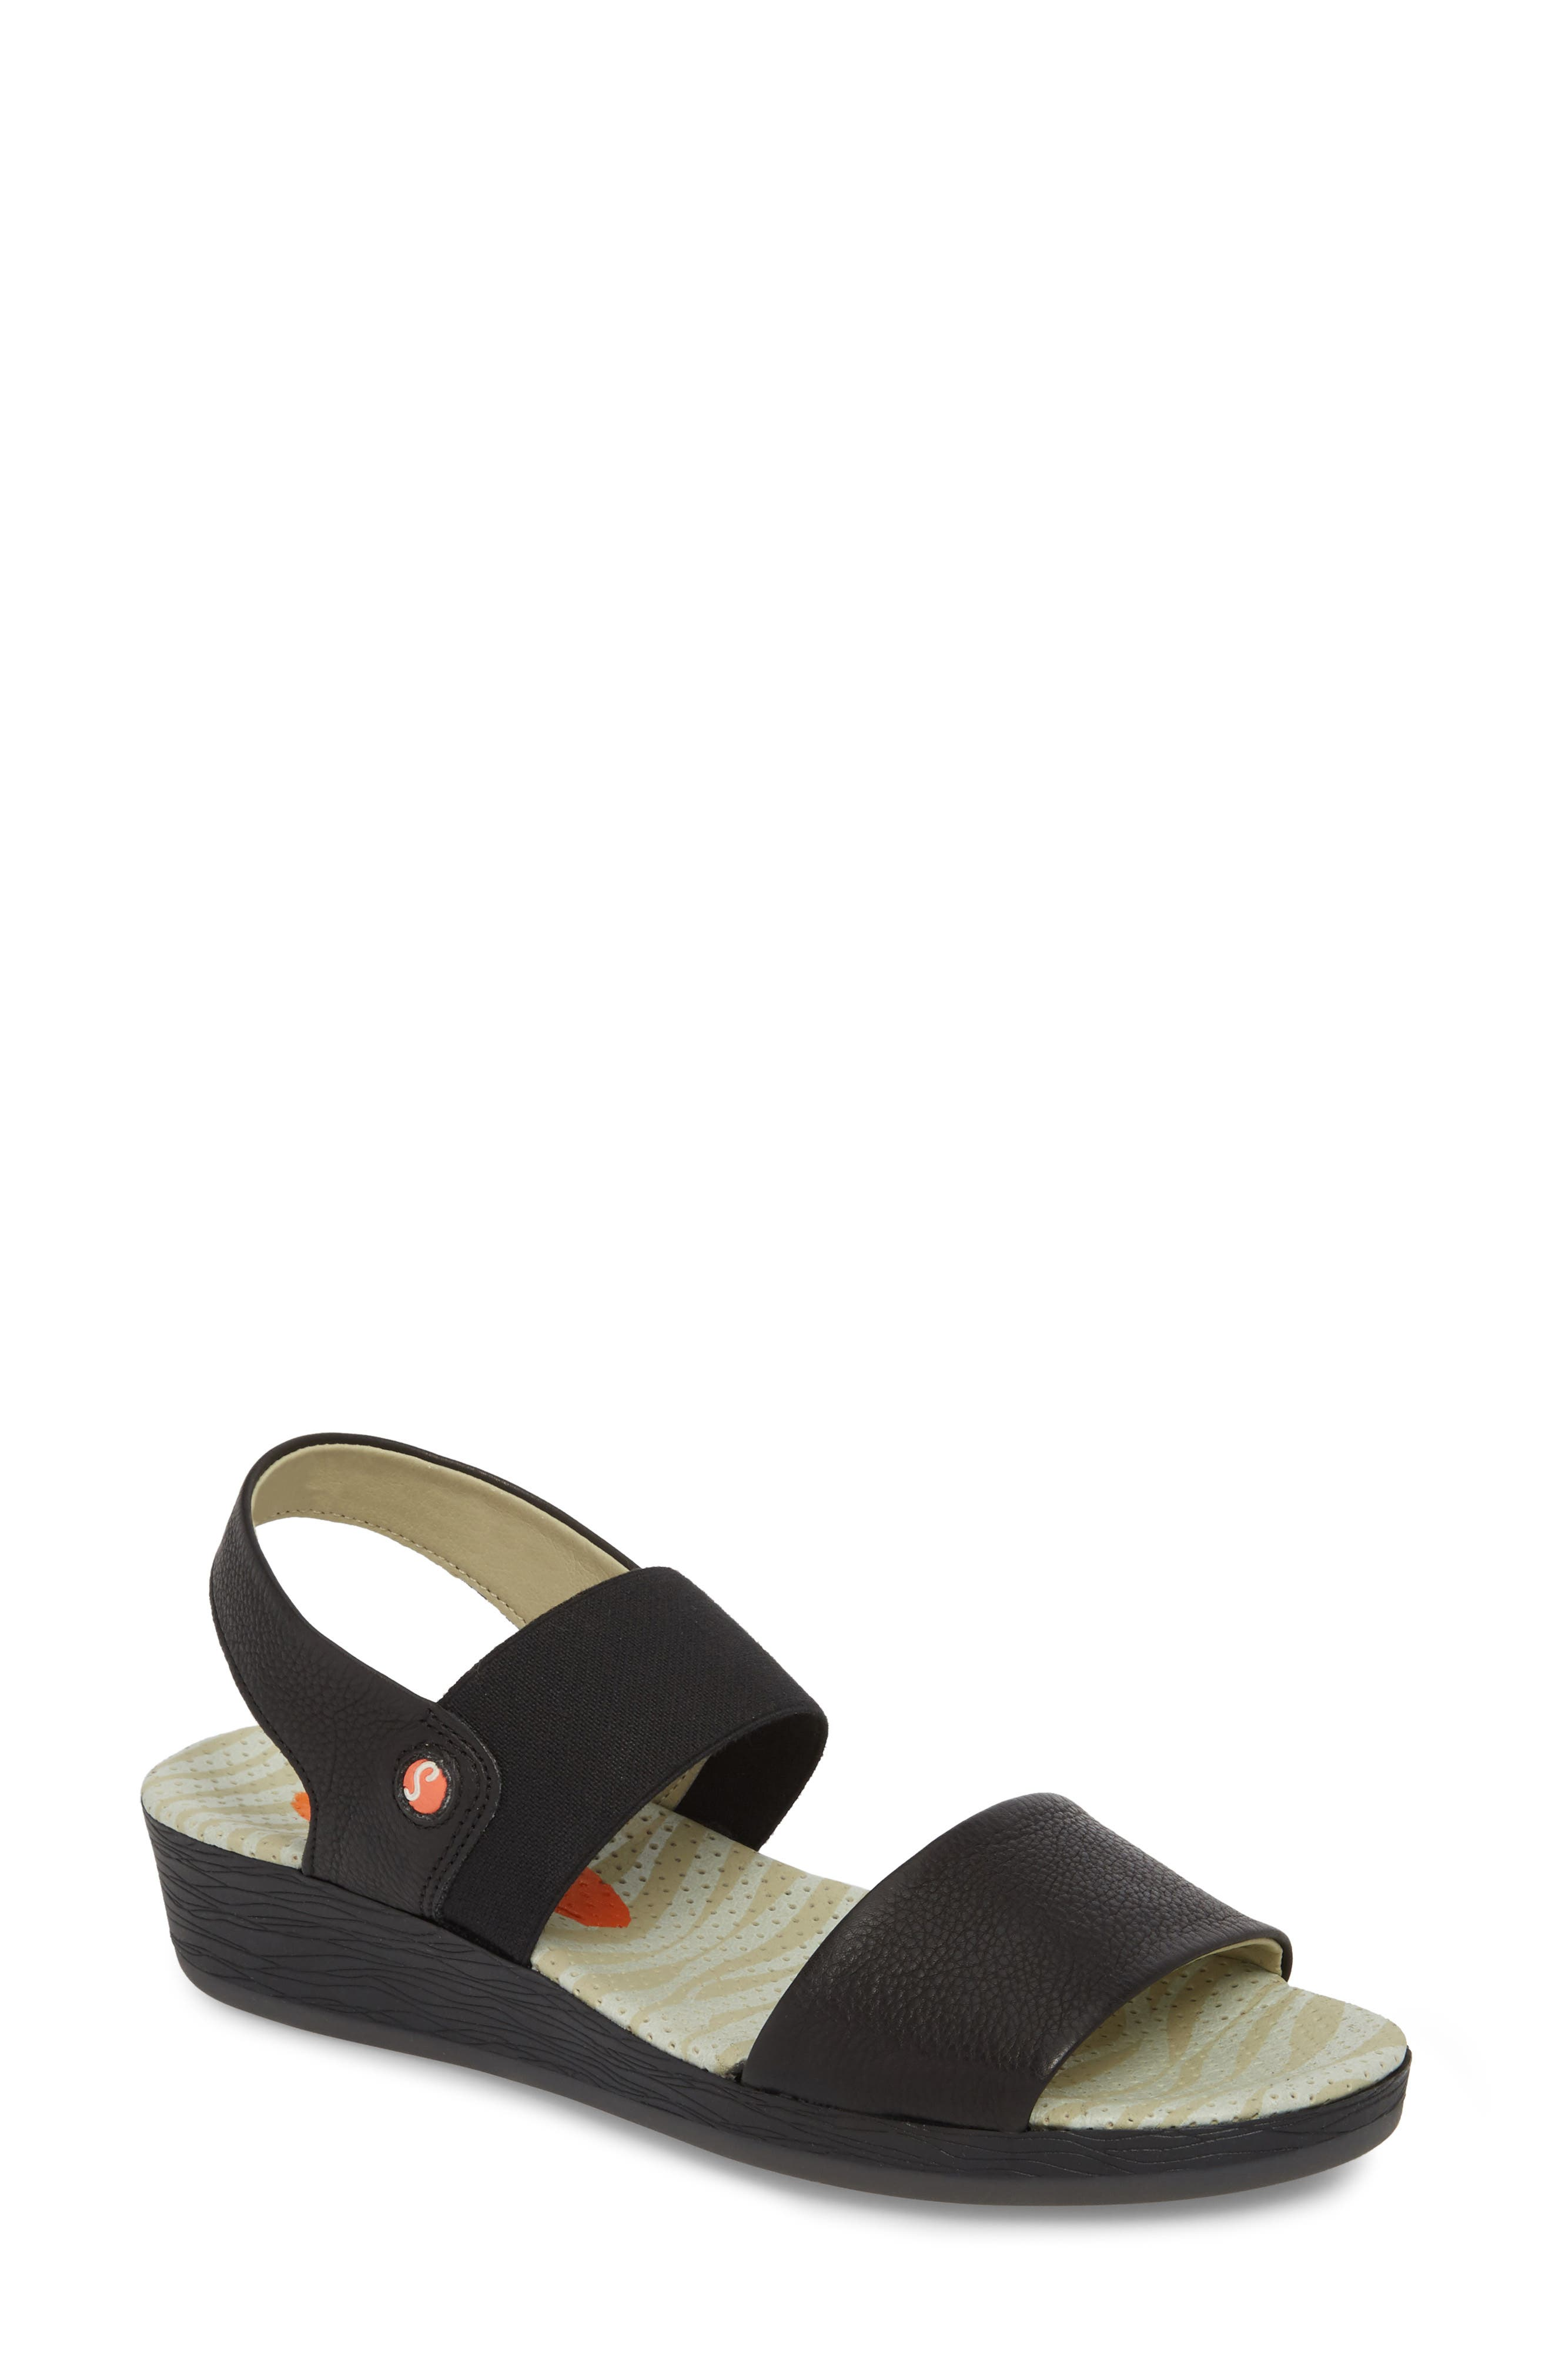 Fly London Women's Alp425Sof Sandal